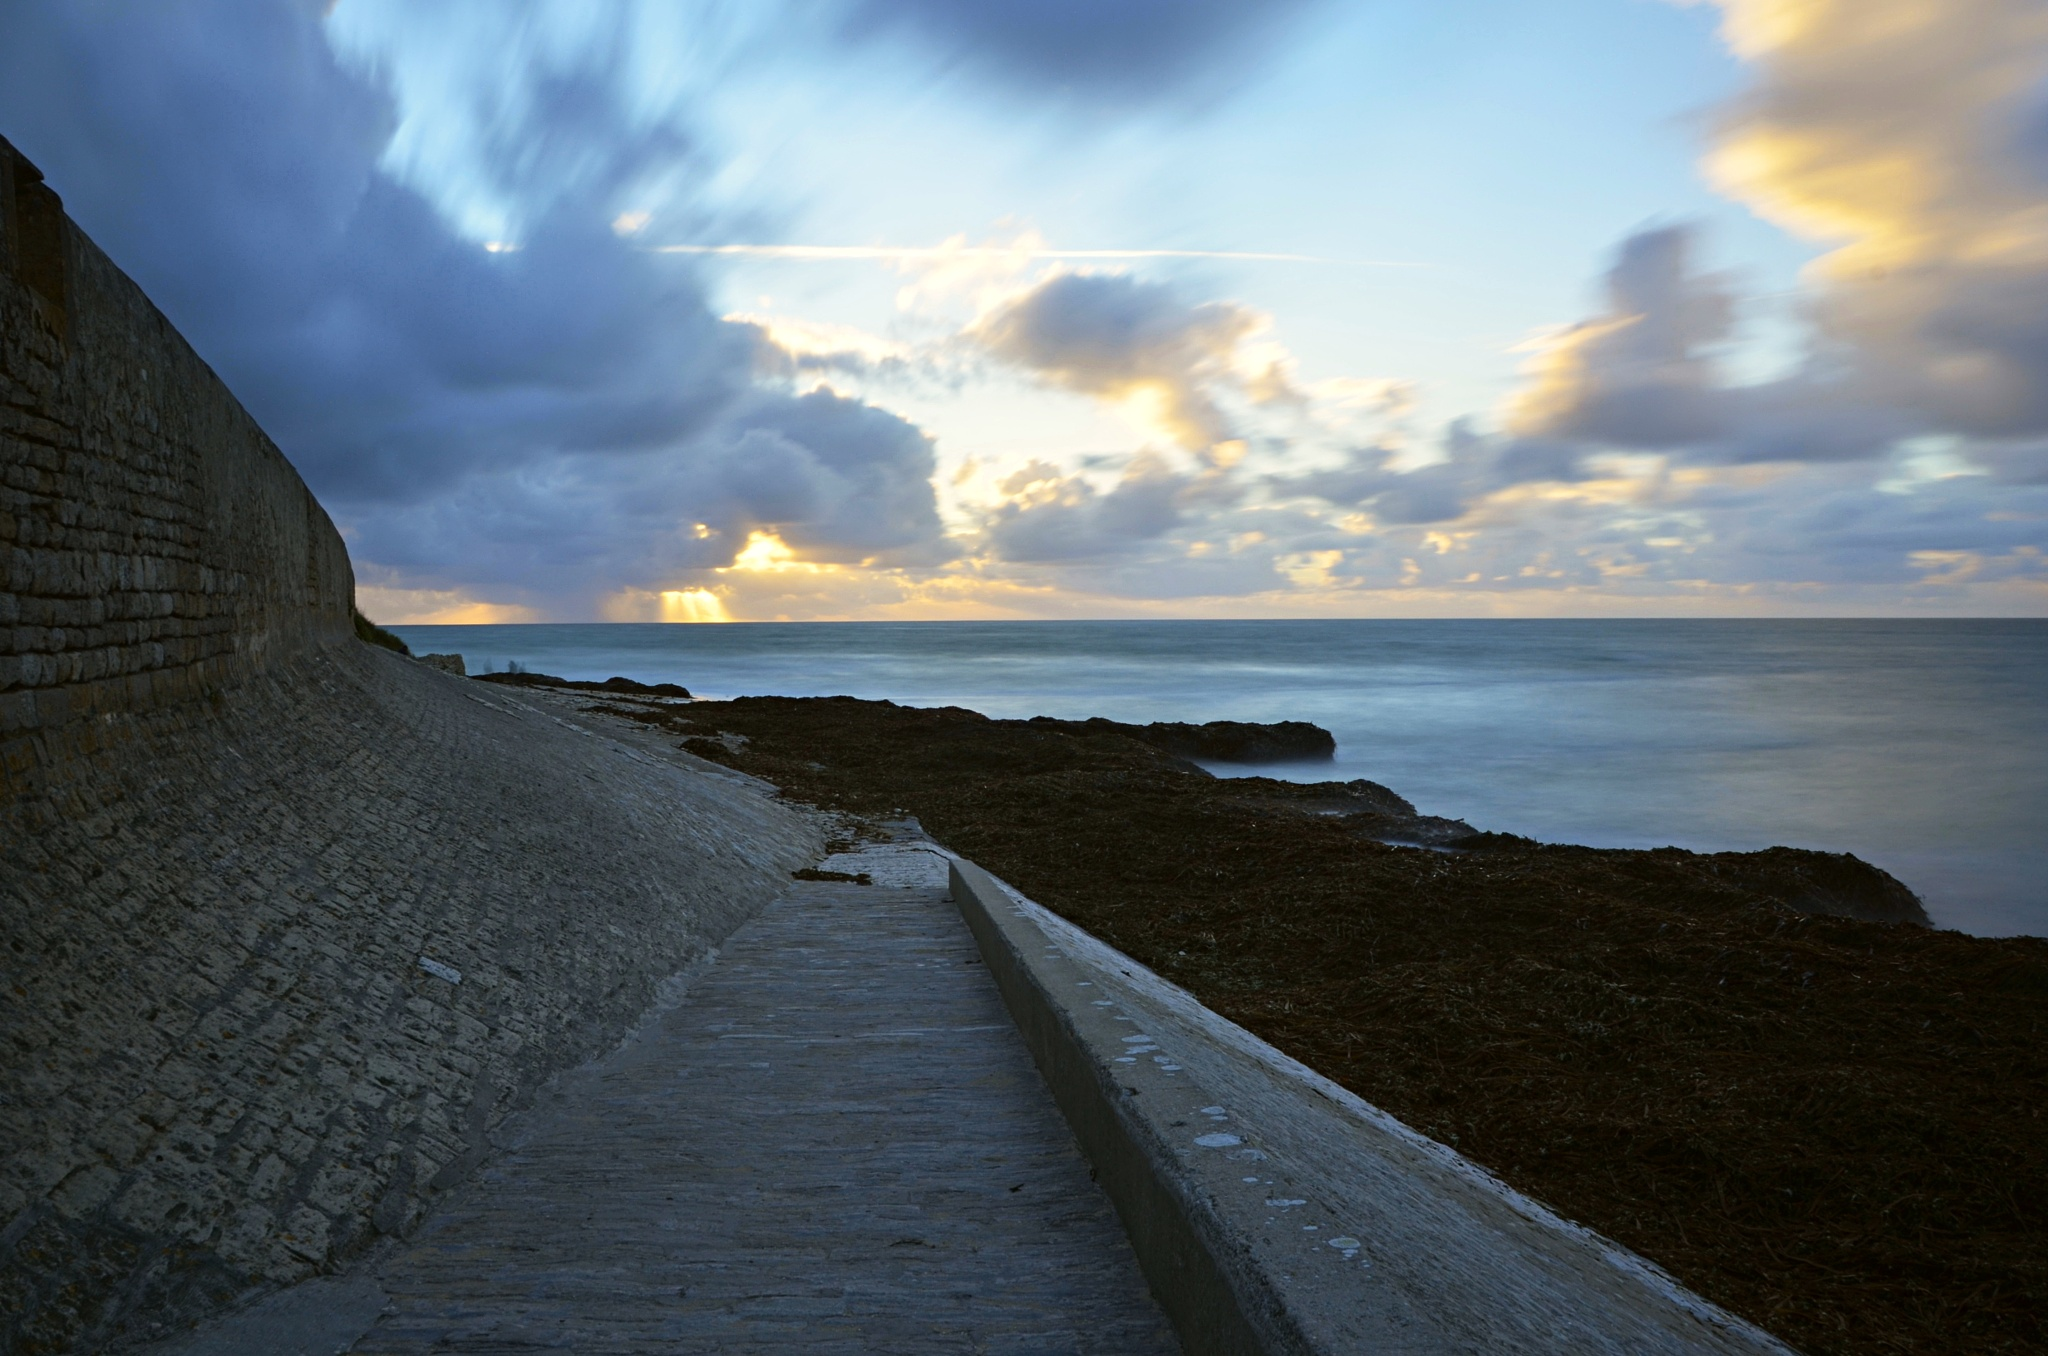 The way to the ocean by Bernard Guillon